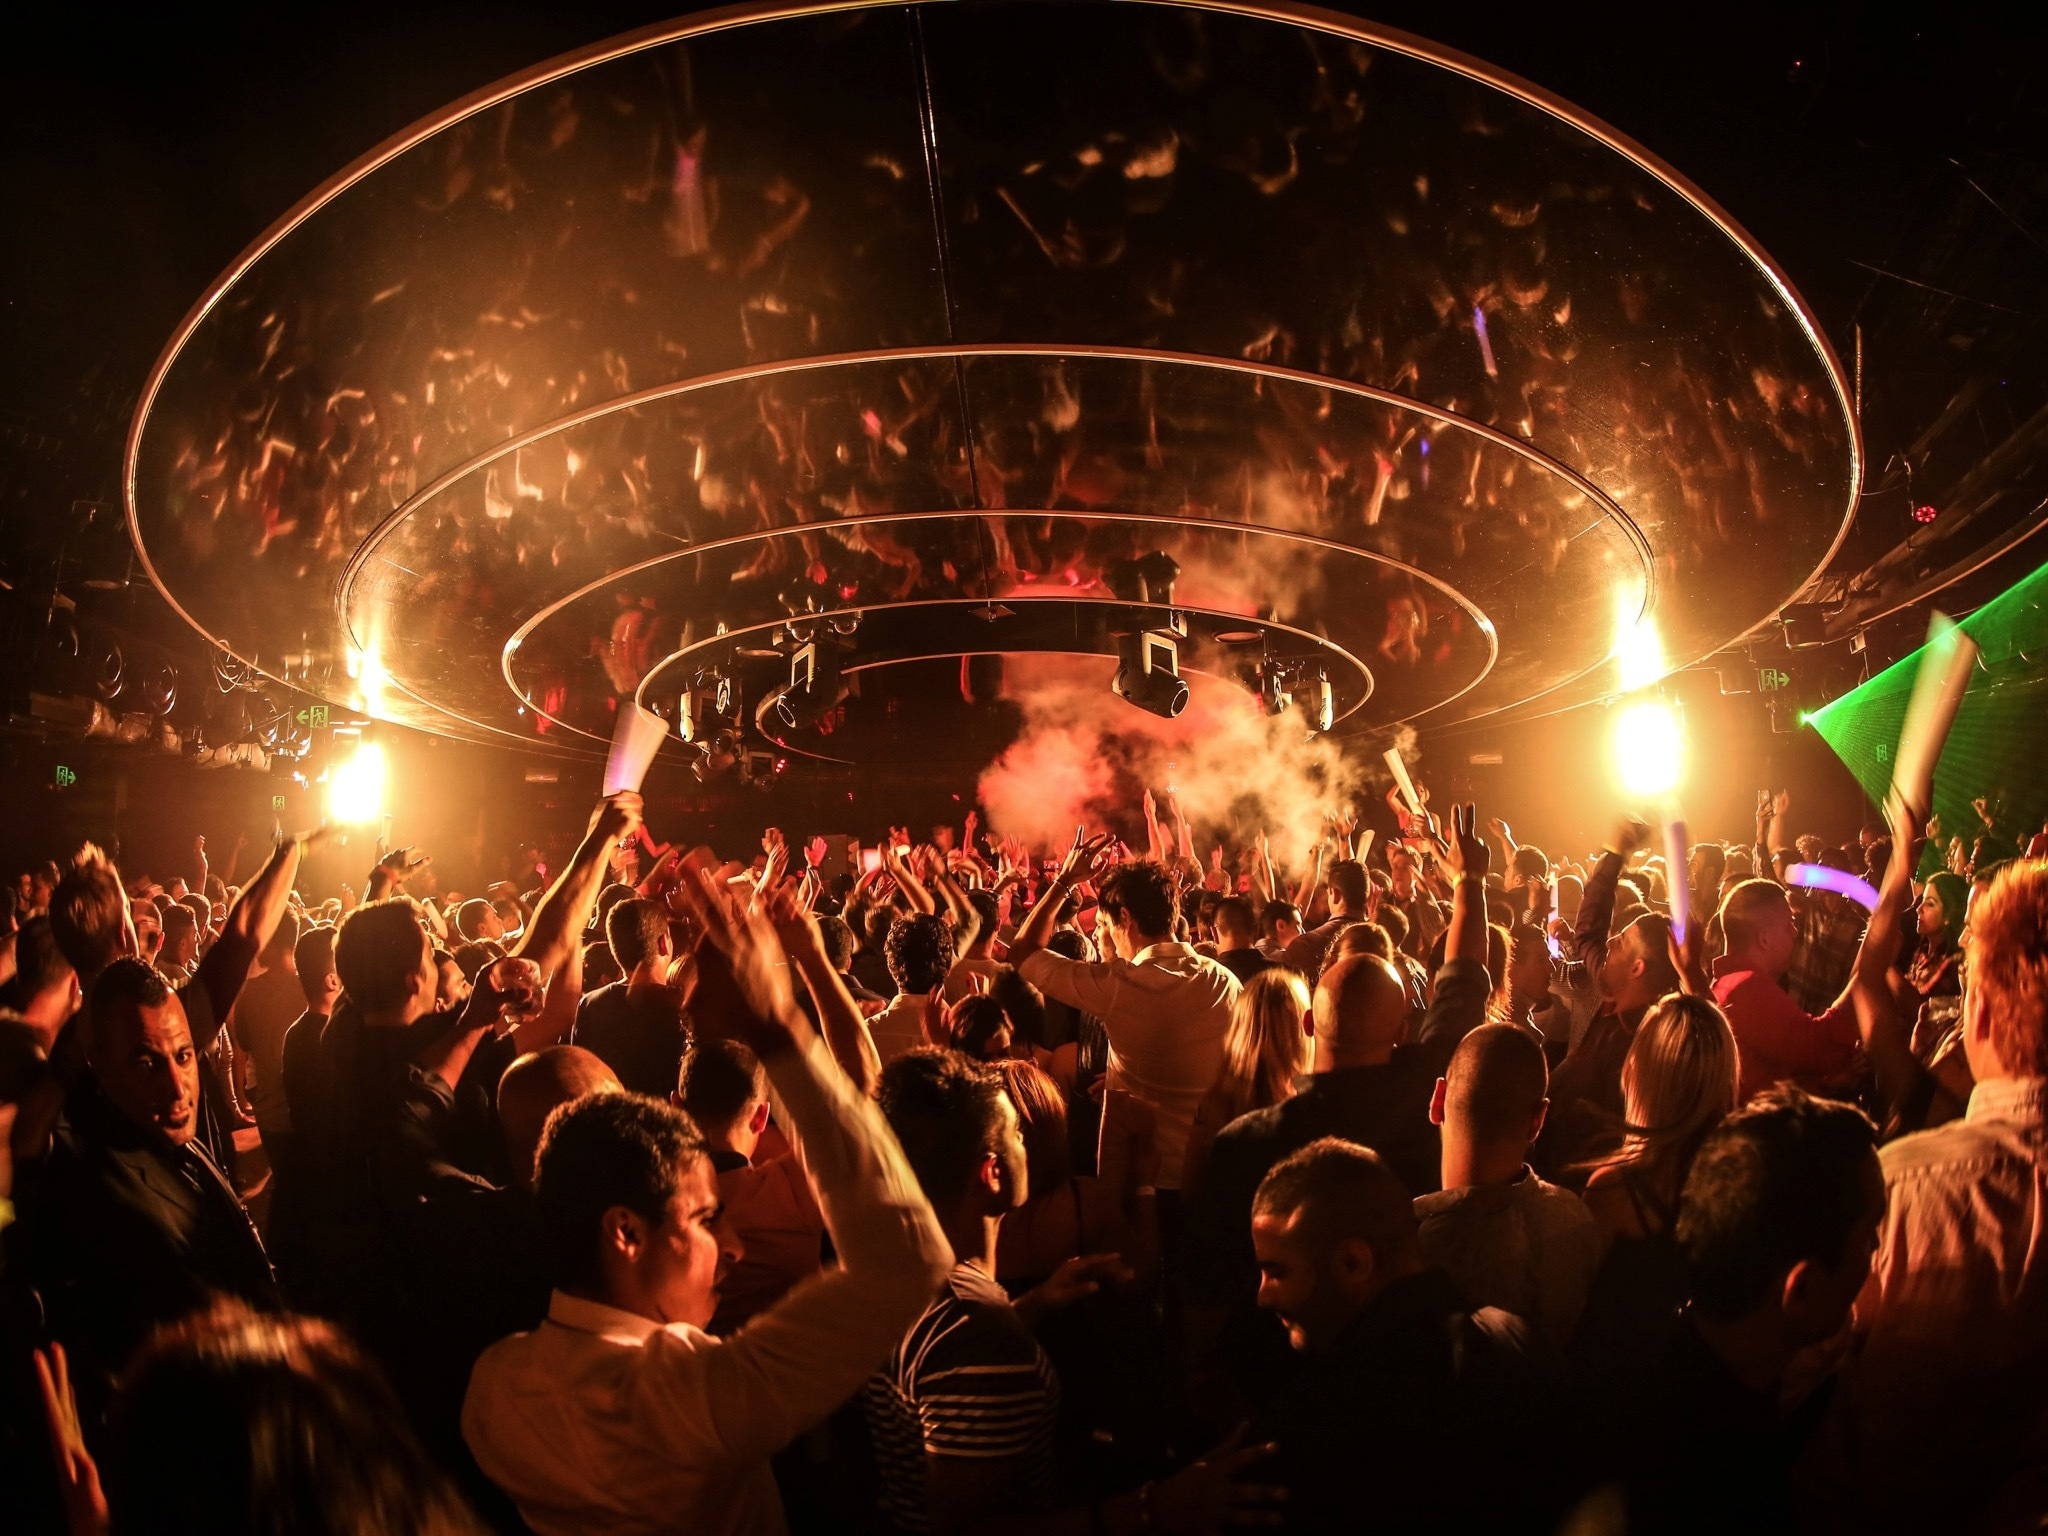 Best Nightlife Venues in Sydney